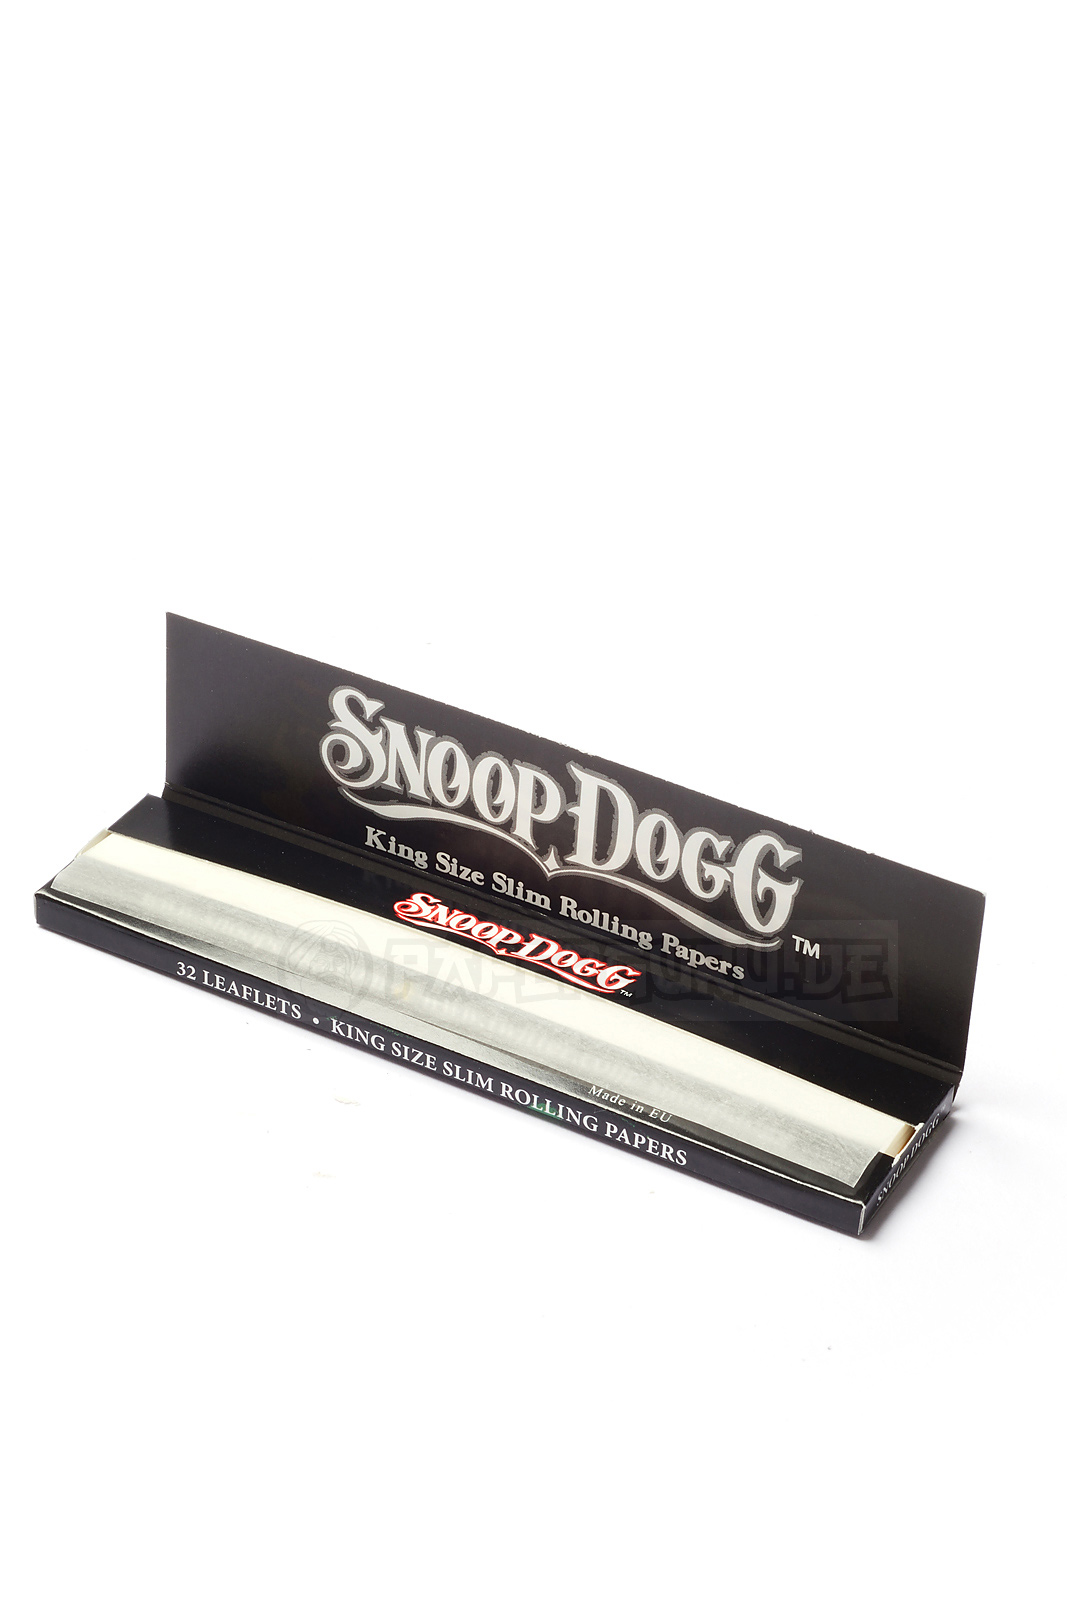 20x Snoop Dogg Rolling Papers King Size slim Blättchen ...